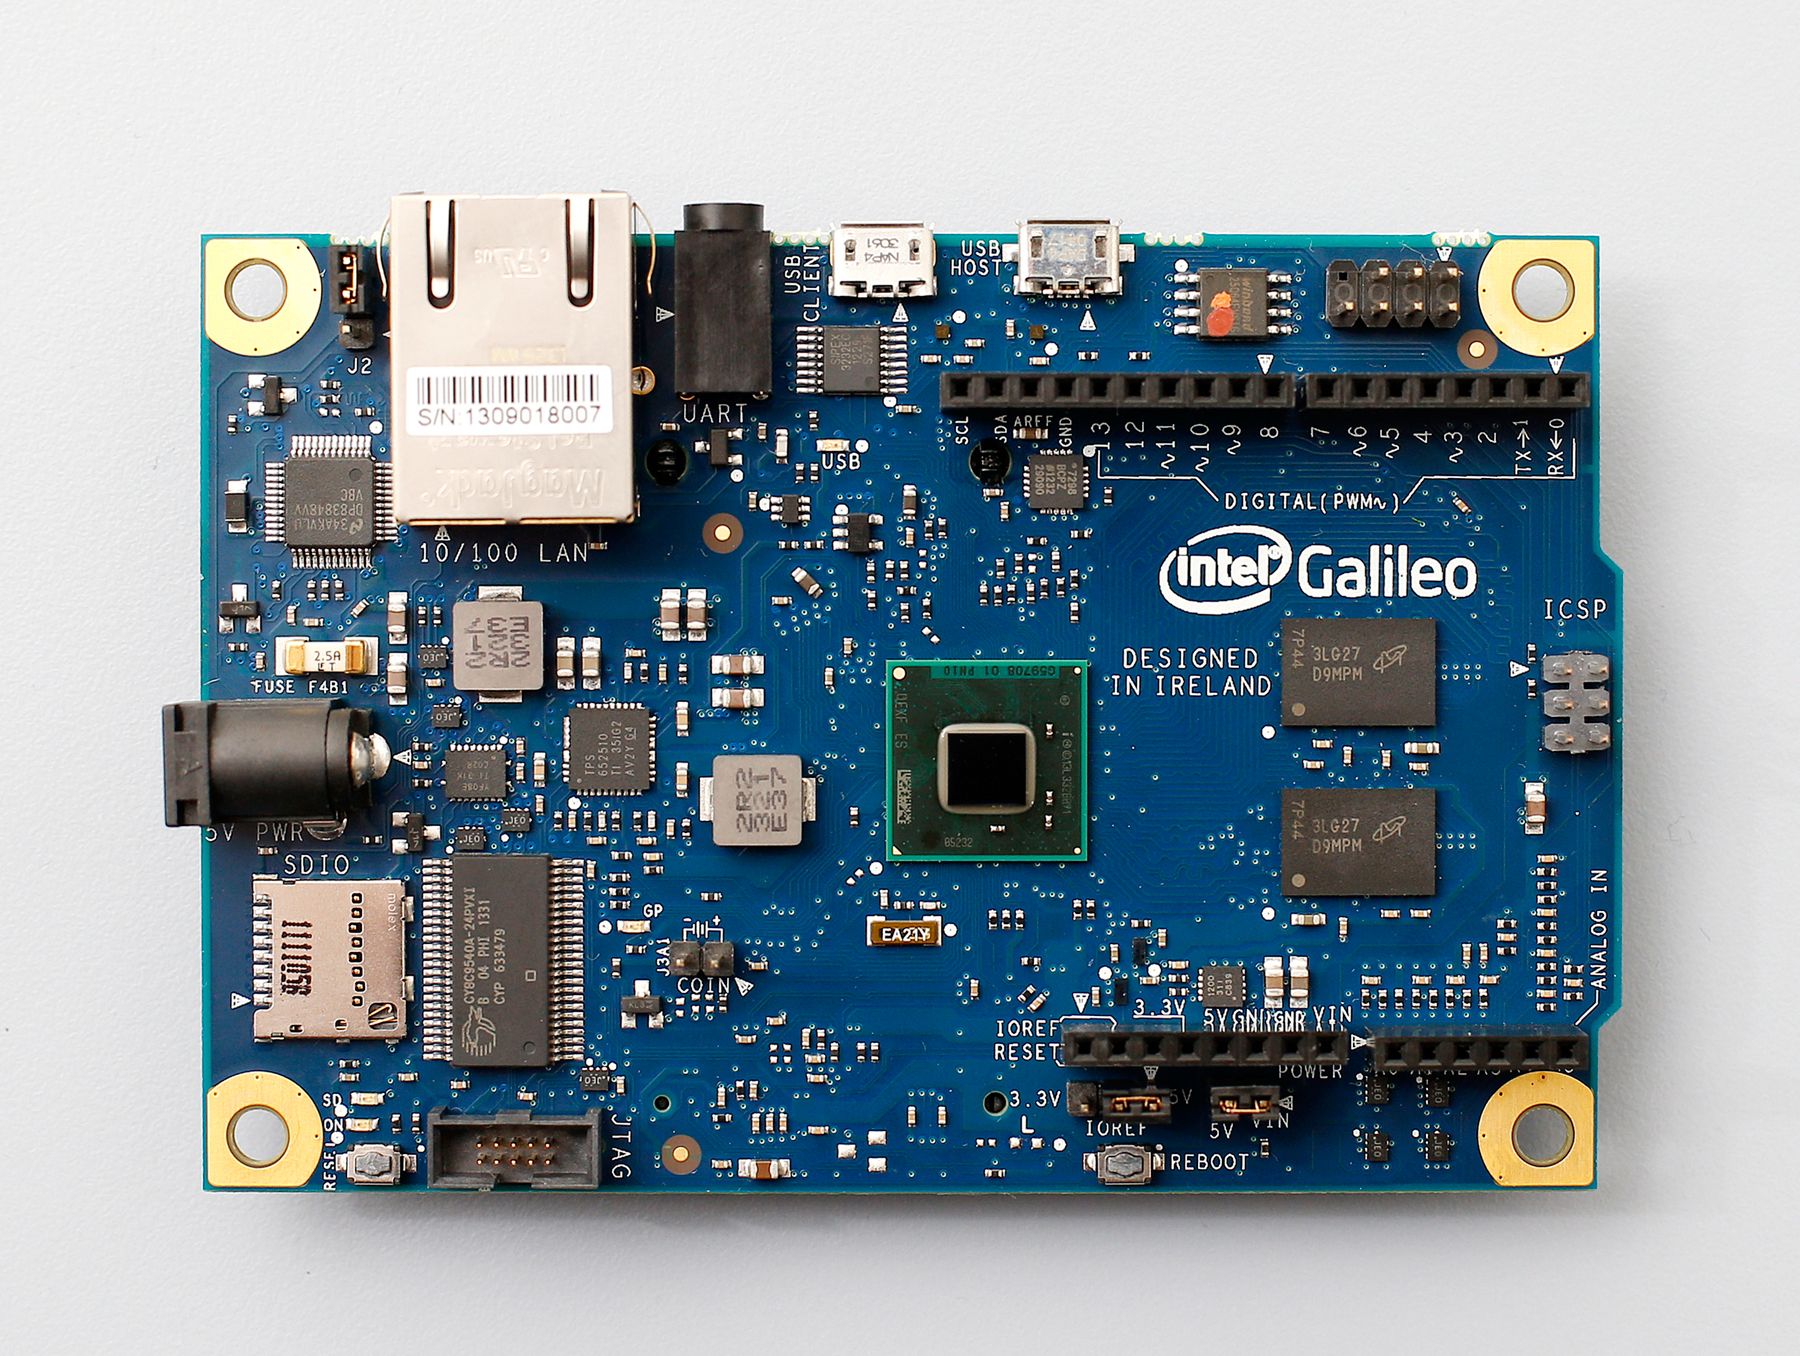 Intel At Maker Faire Rome Newsroom Circuit Board Images Of Photography